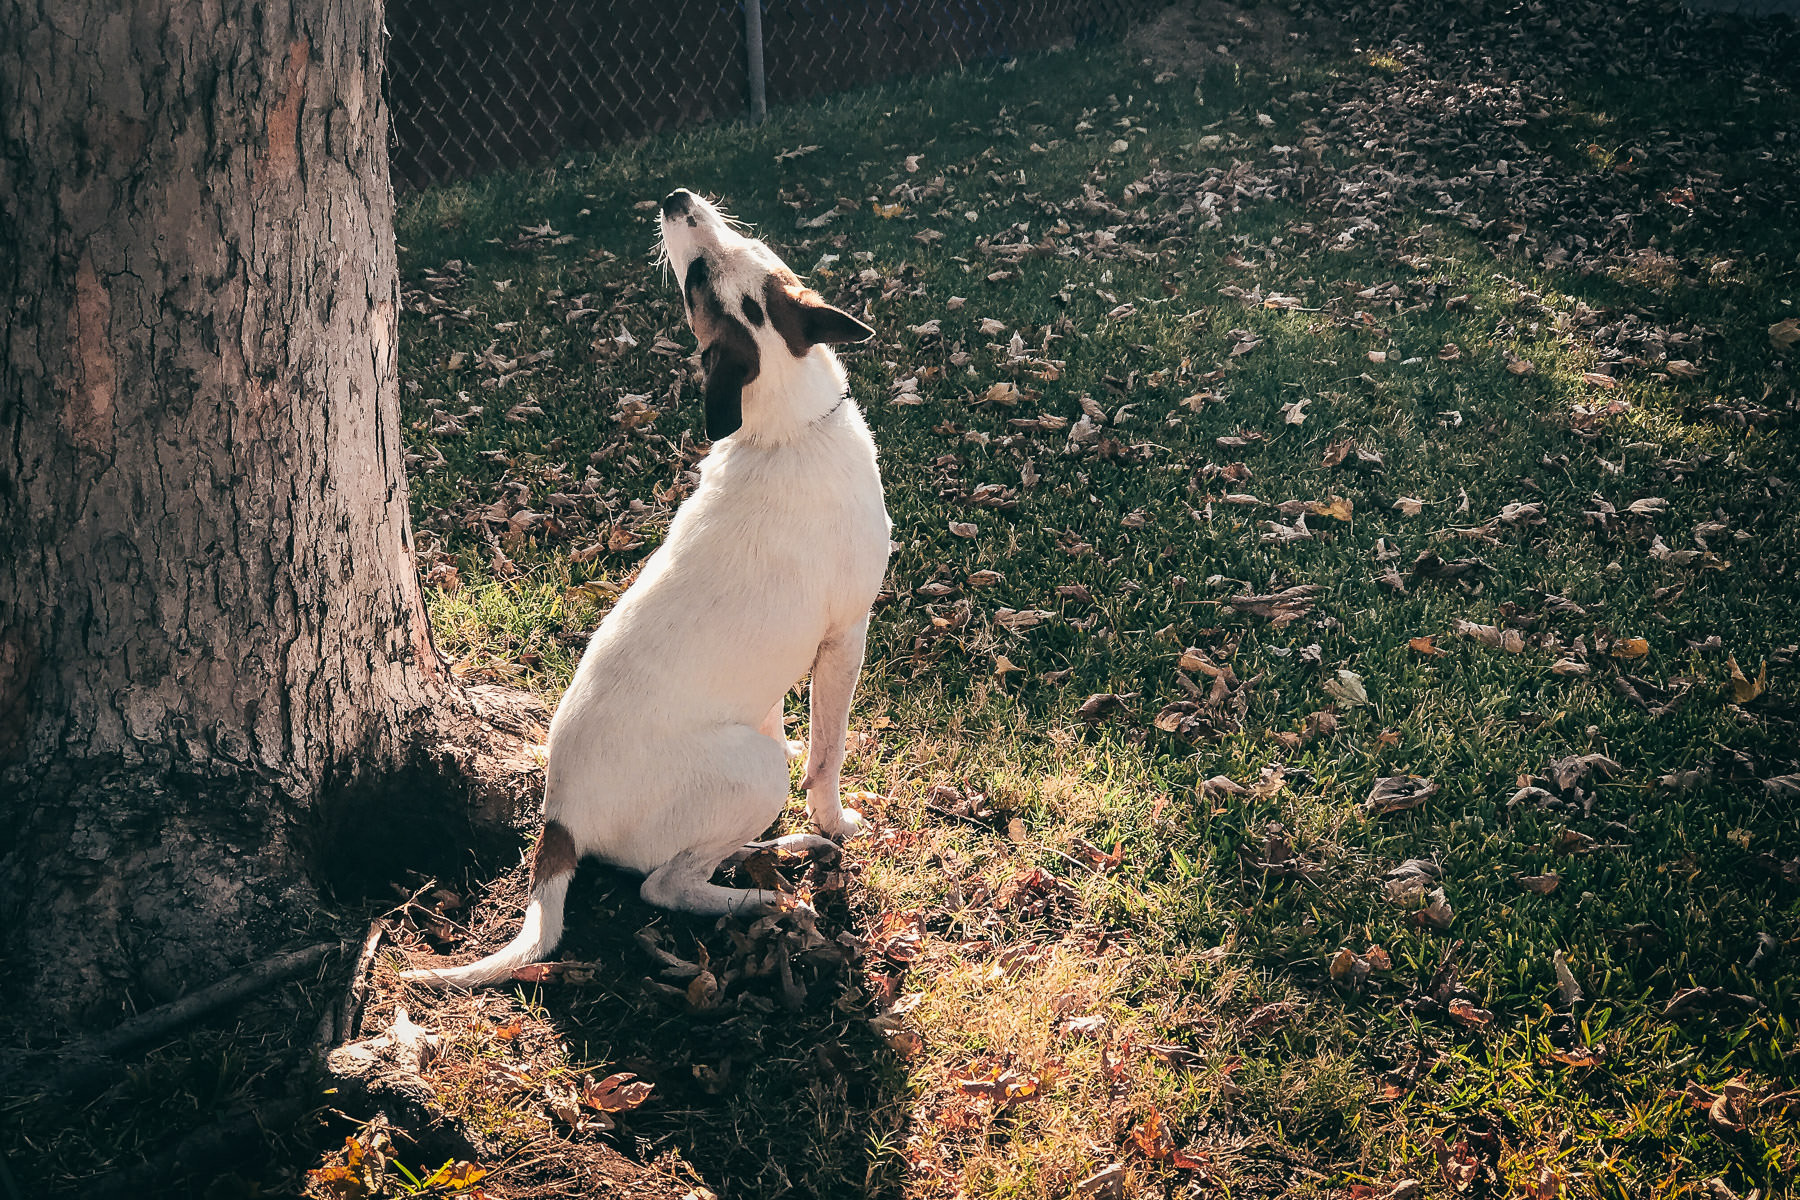 One of our dogs, Millie, investigates a sound in a tree.